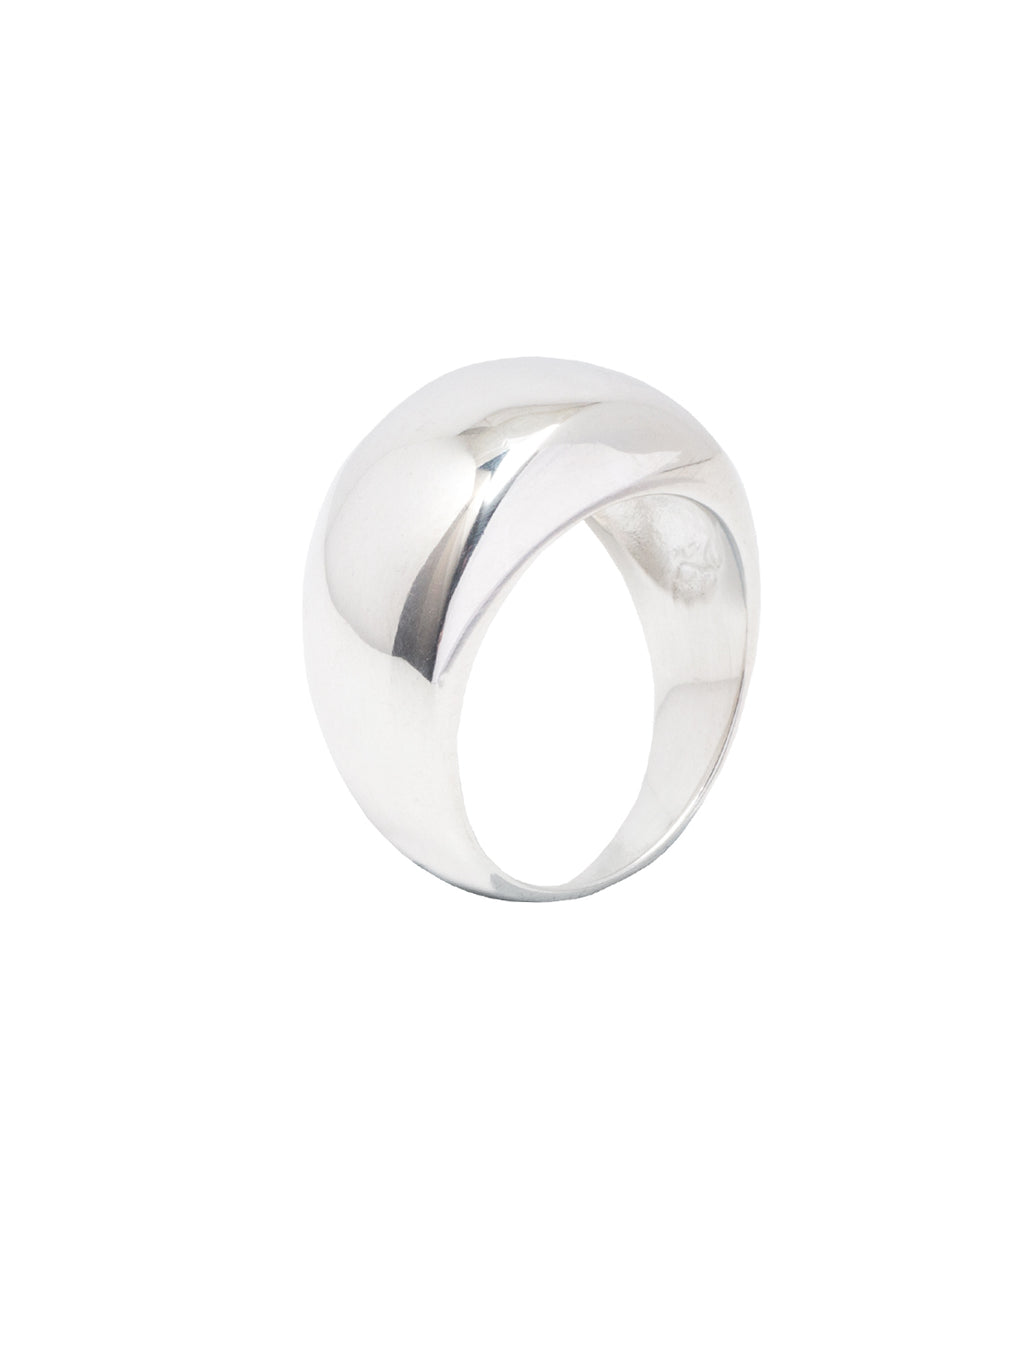 TILLY SVEAAS DOME RING